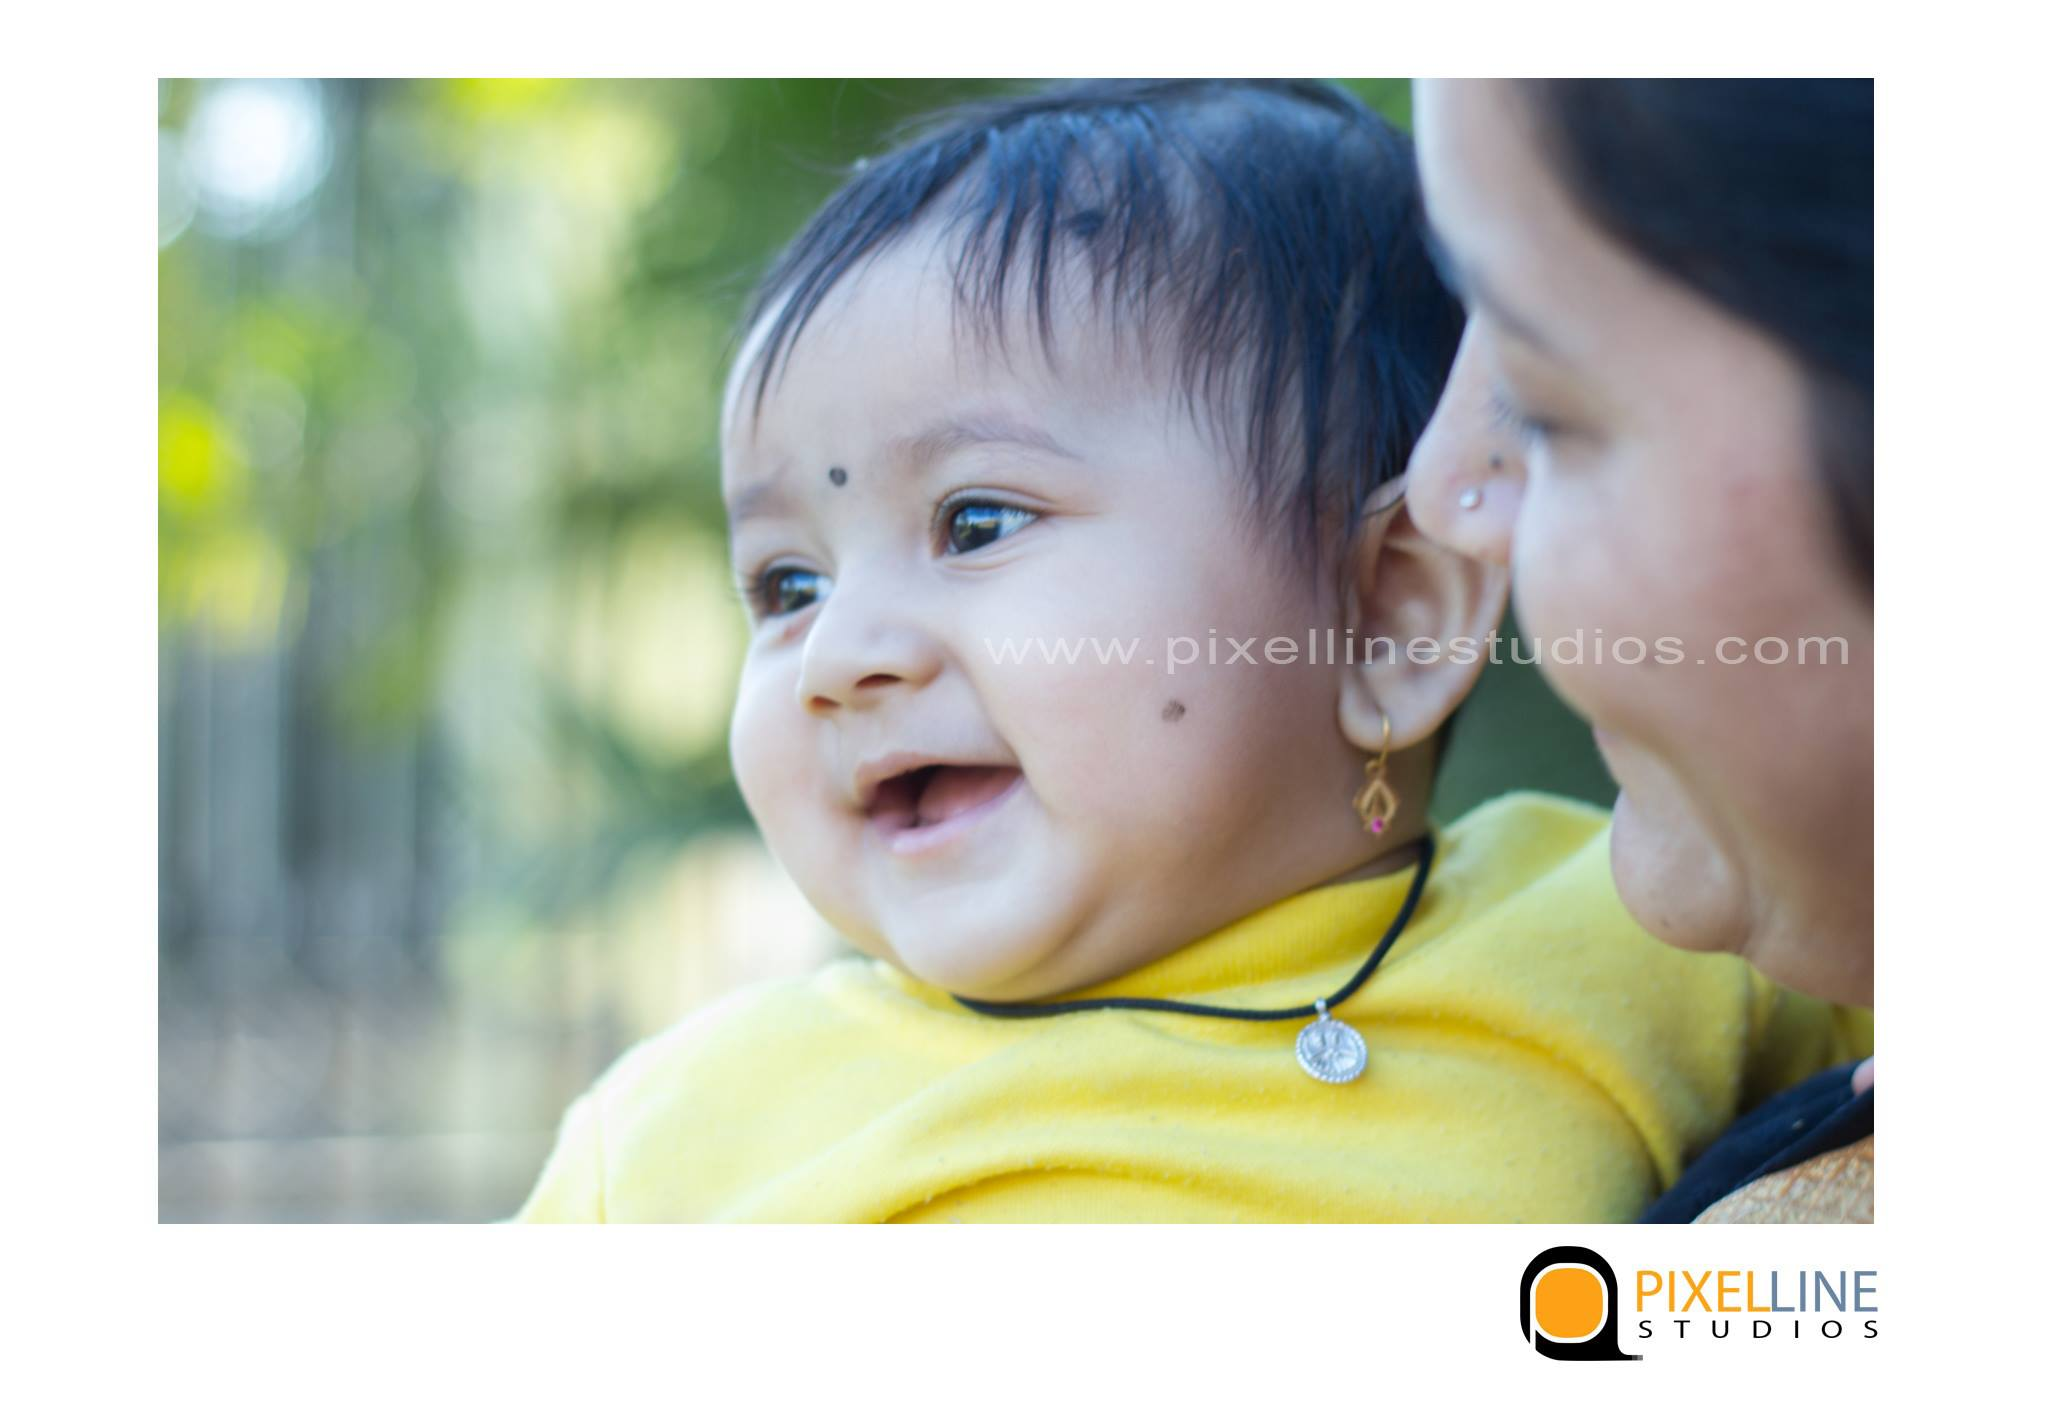 new-born-photography-in-pune_pixellinestudios